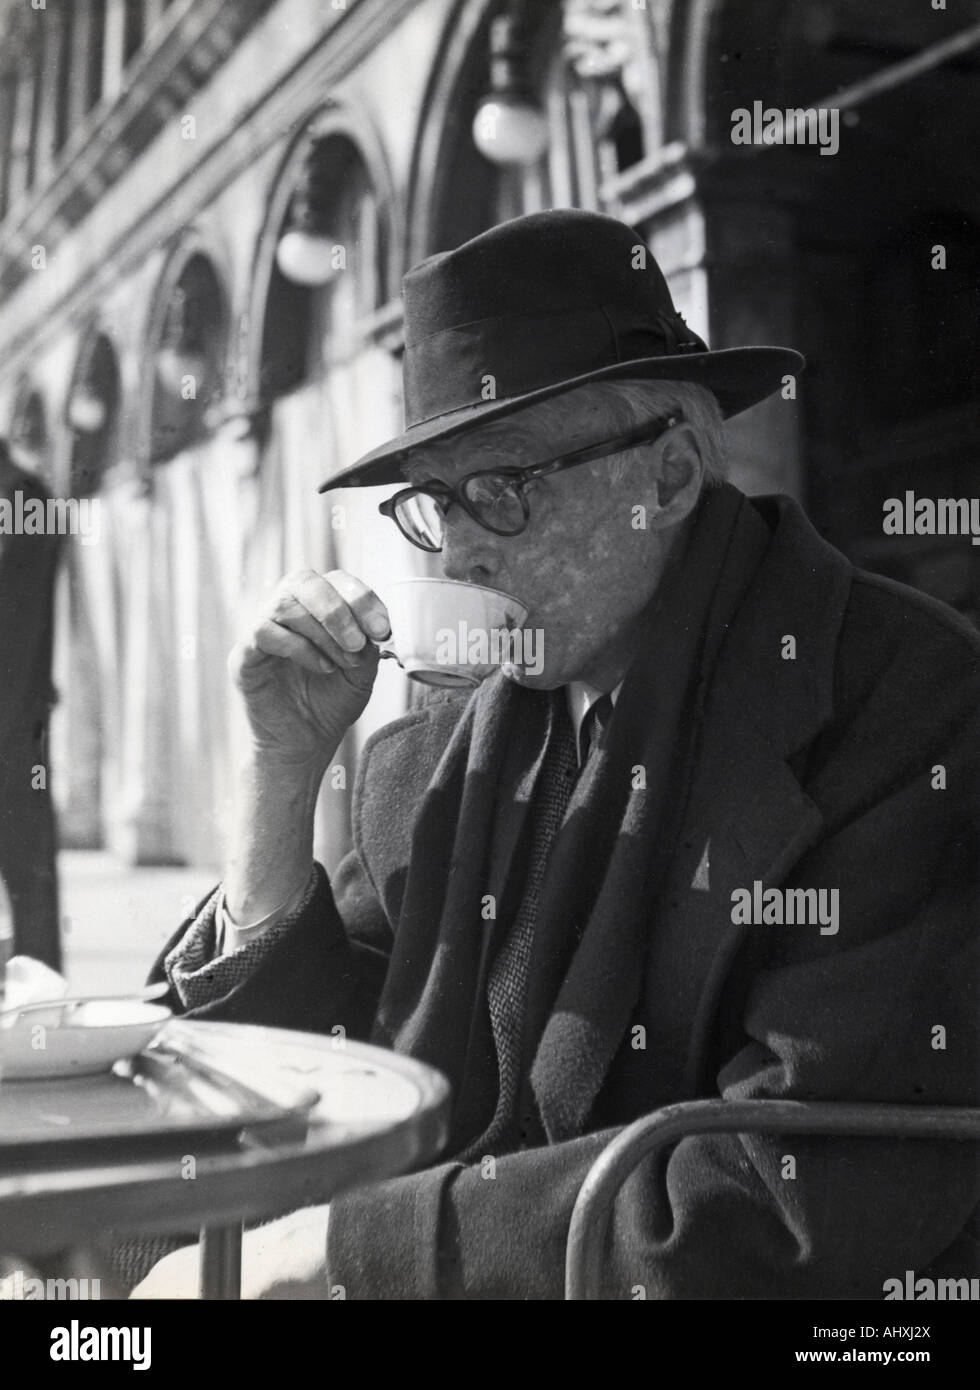 SINCLAIR LEWIS  US novelist sips a coffee in St Marks Square, Venice, during a visit to Italy in 1950 the year before - Stock Image